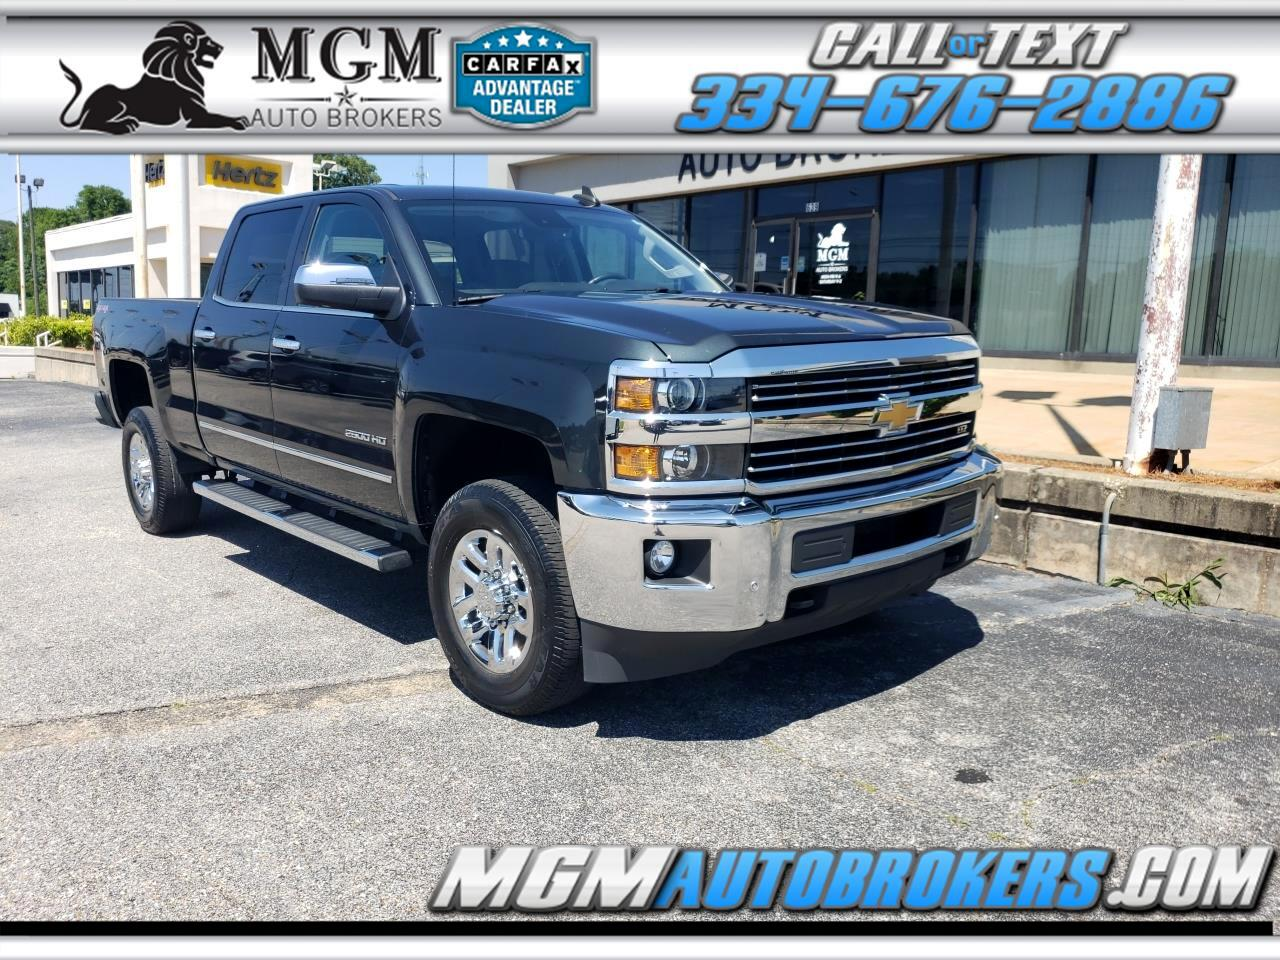 2017 Chevrolet Silverado 2500HD HEAVY DUTY LTZ